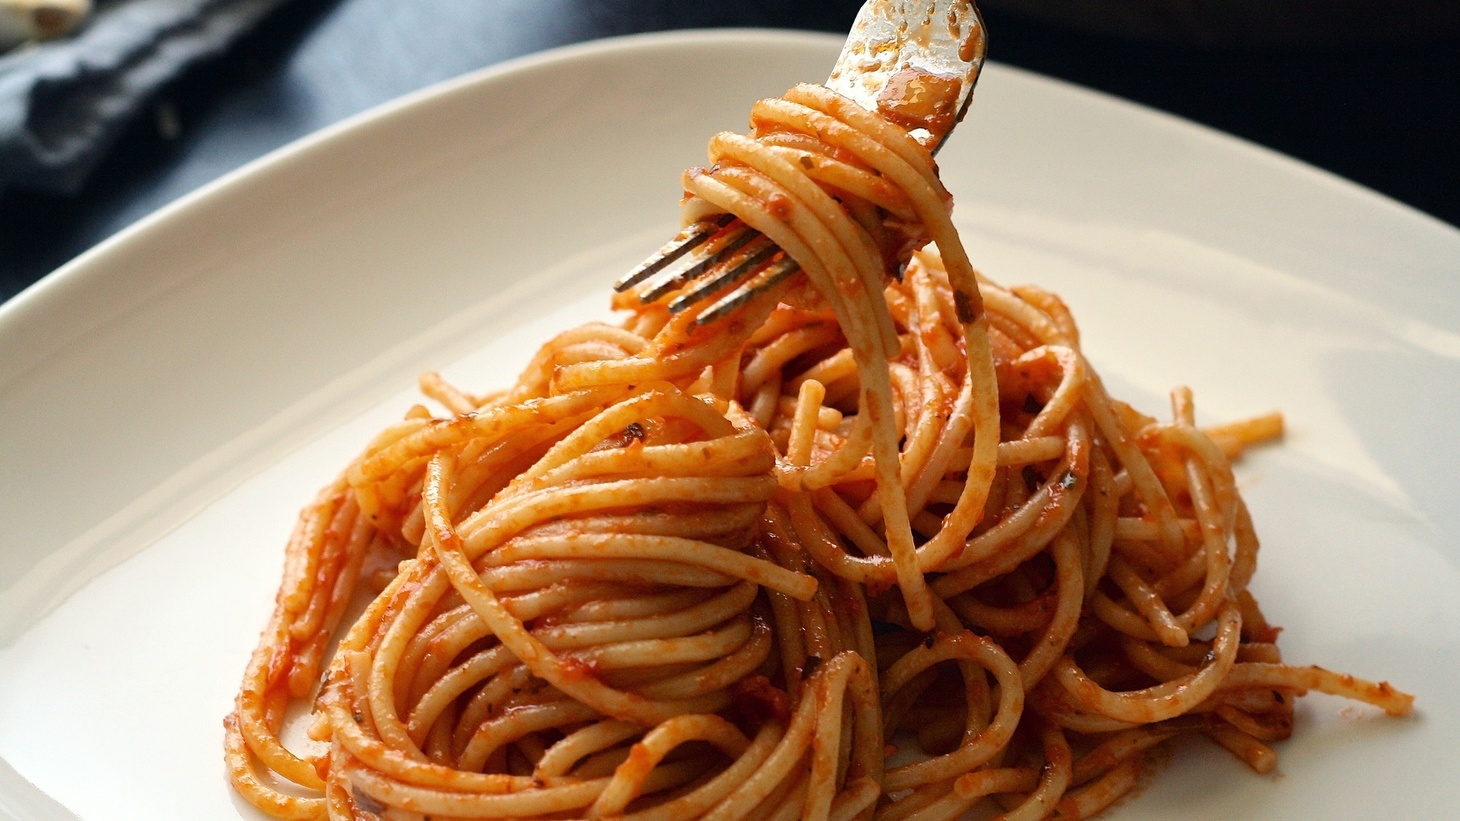 To make tomato sauce, use extra virgin olive oil, fresh tomatoes, garlic and salt.